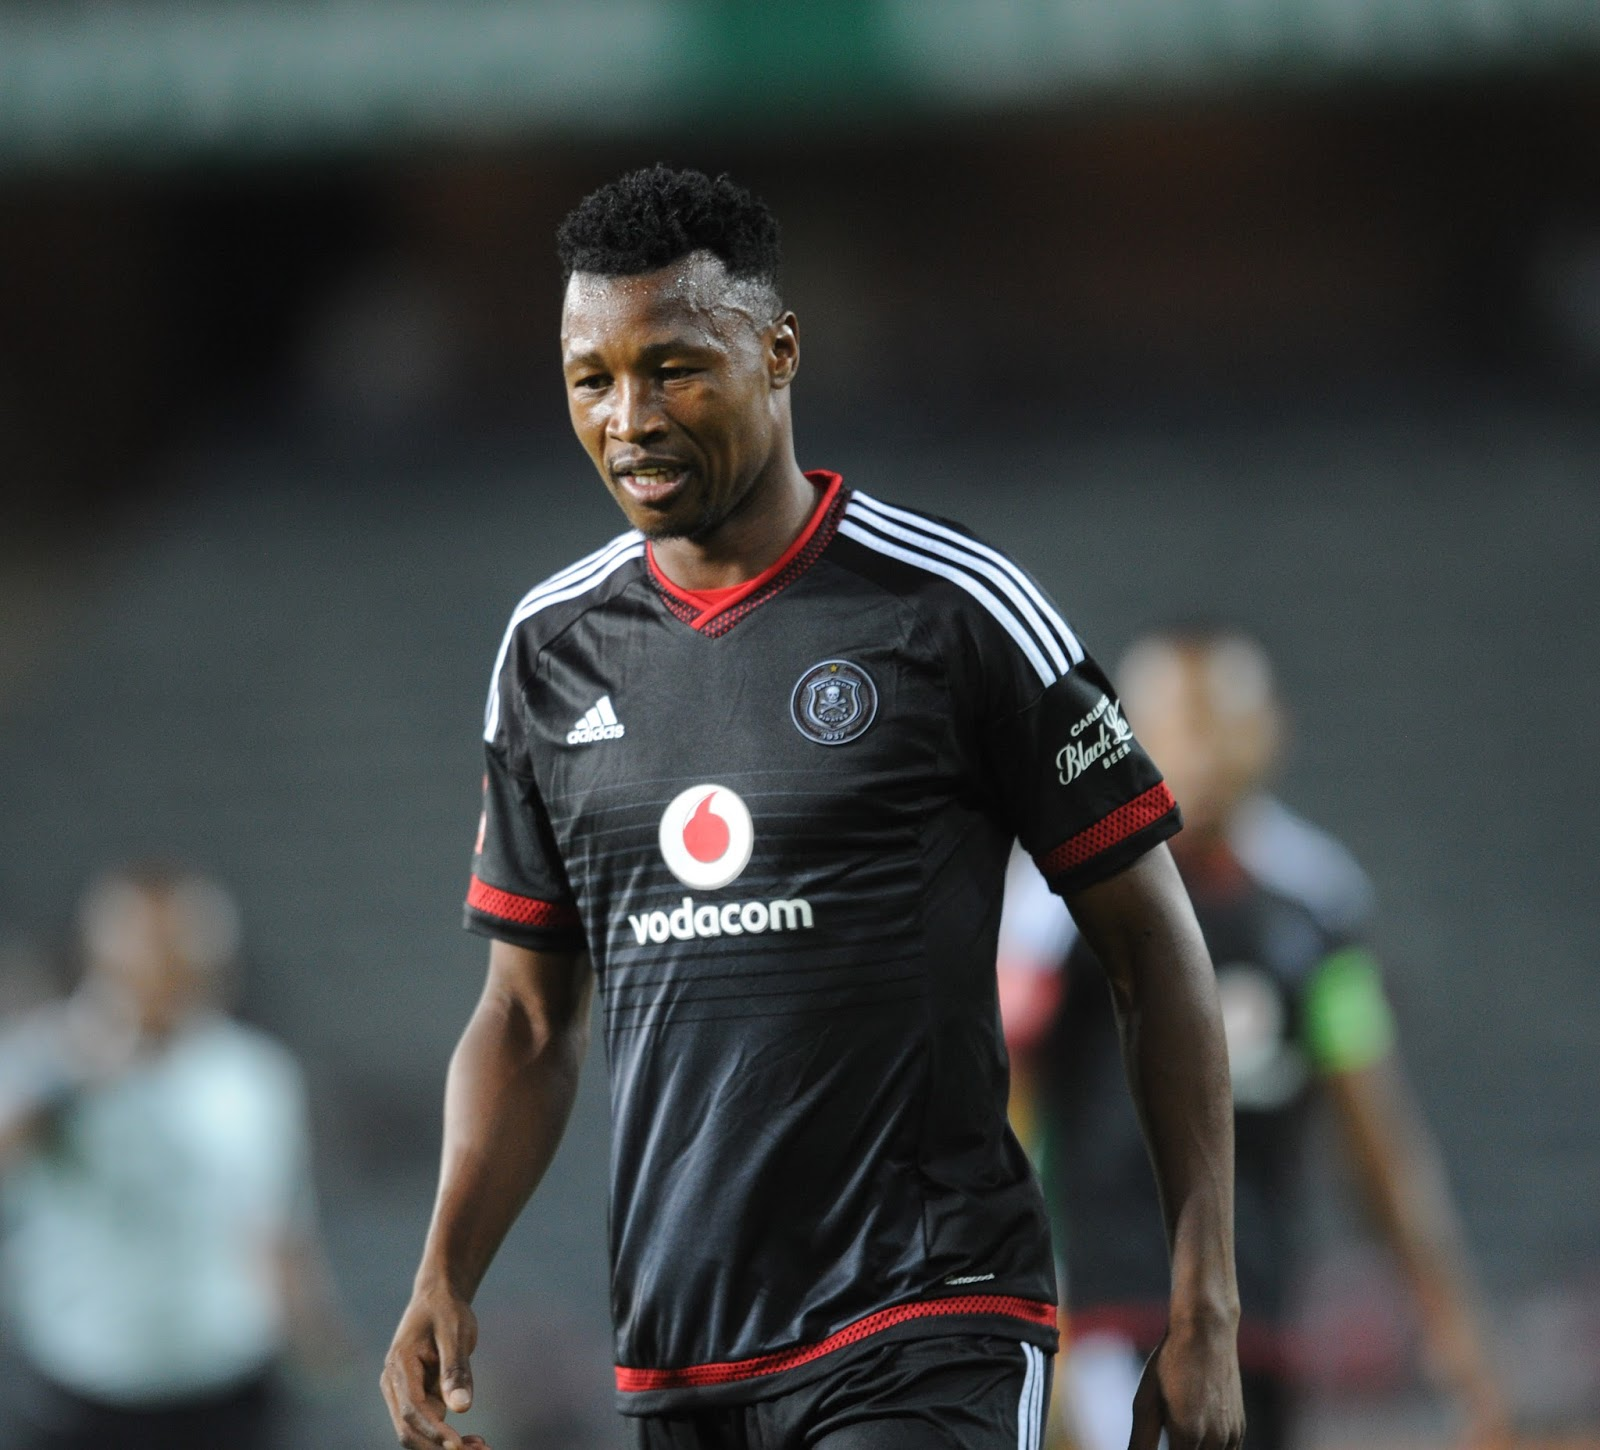 Jomo Sono warns Black Leopards won't win PSL games with current squad